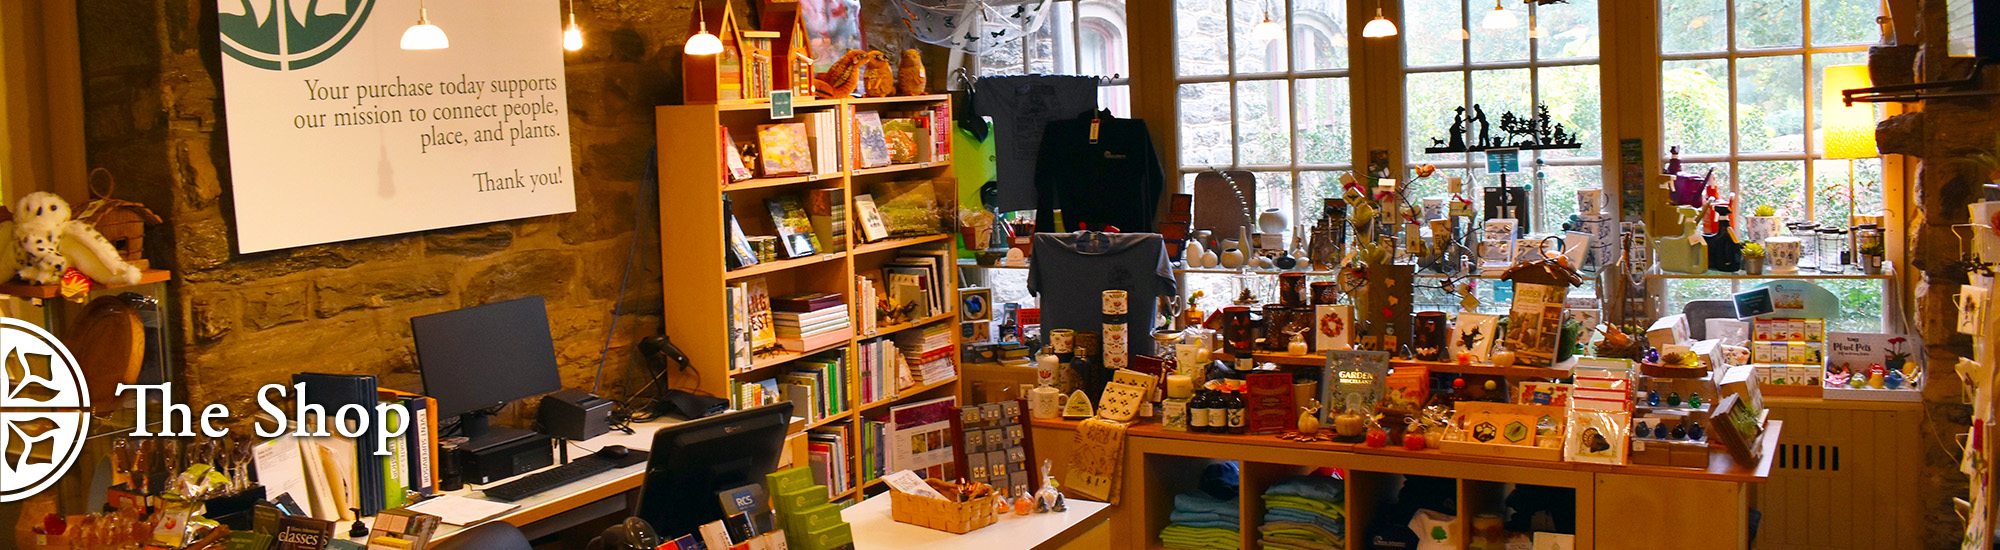 The Shop at Morris Arboretum